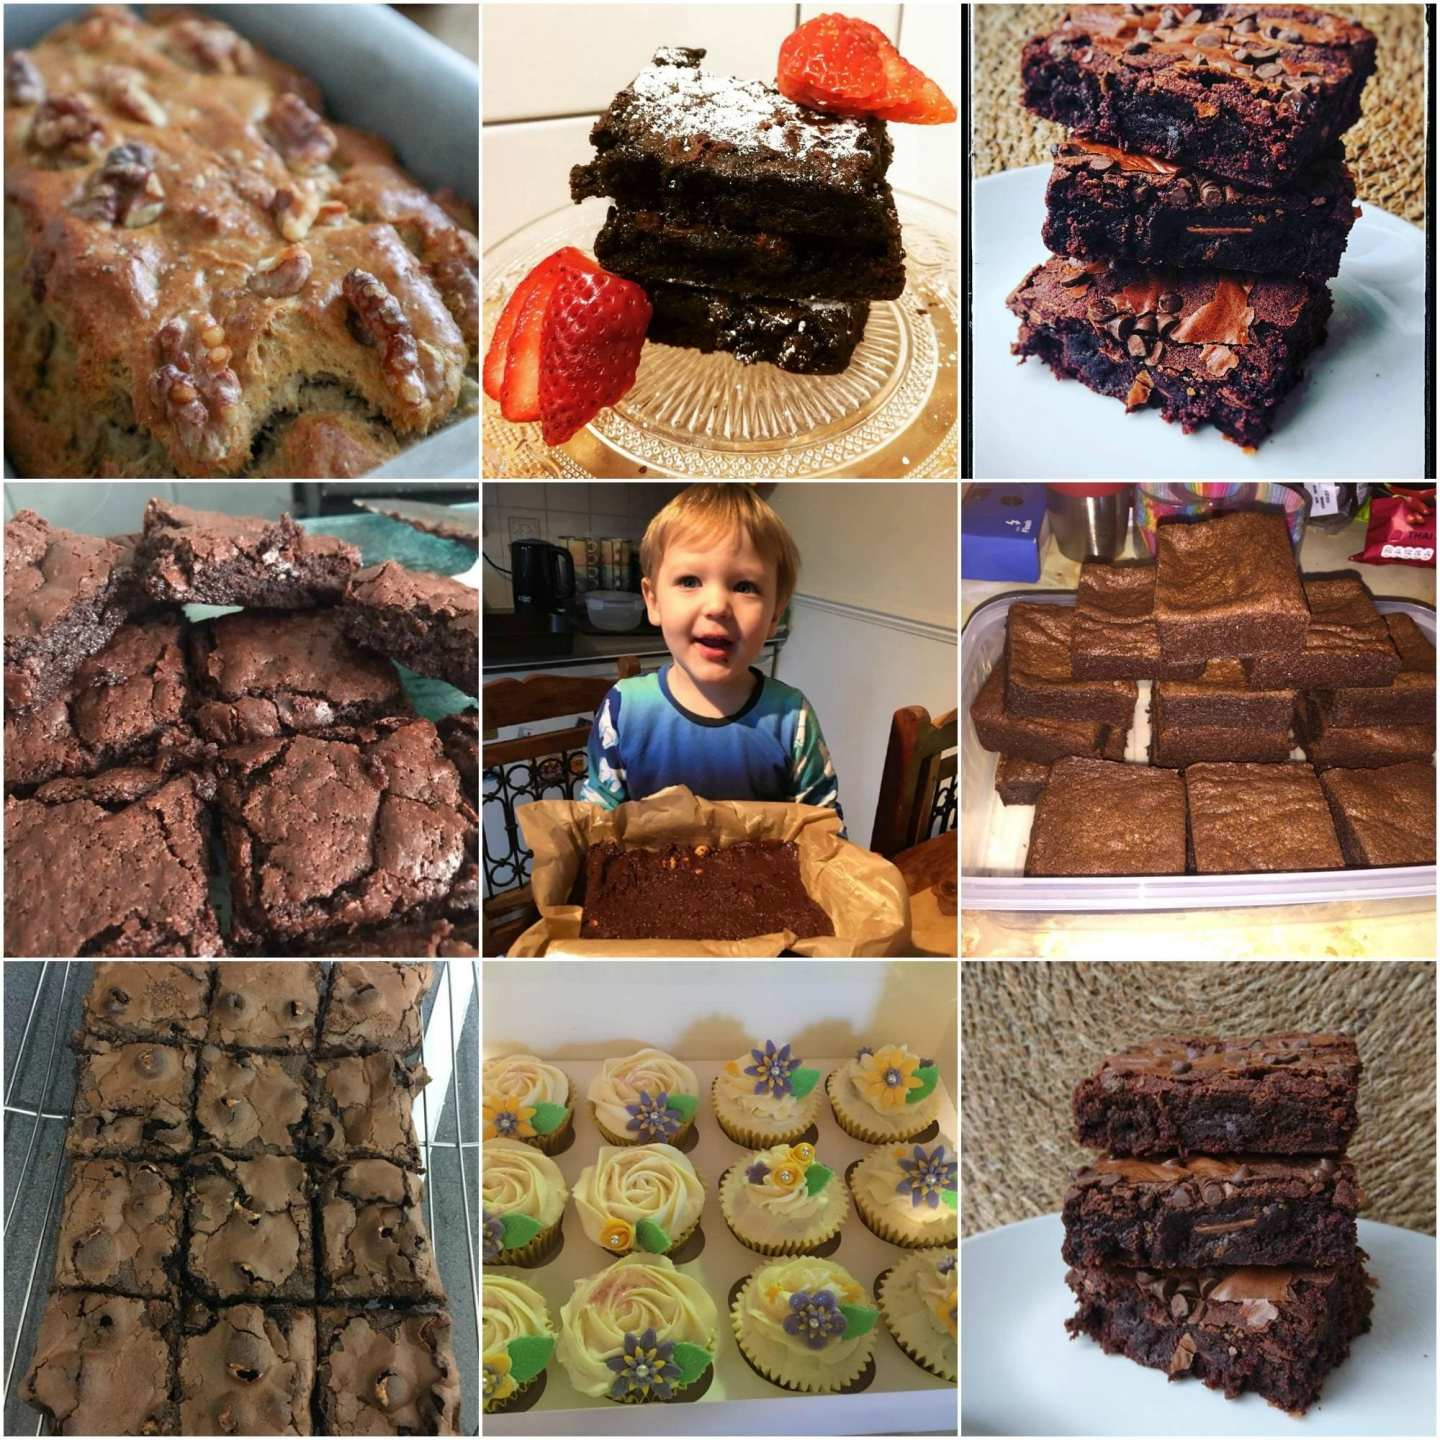 Monthly Round Up - January 2018 - Cakes, Bakes and Blog Updates